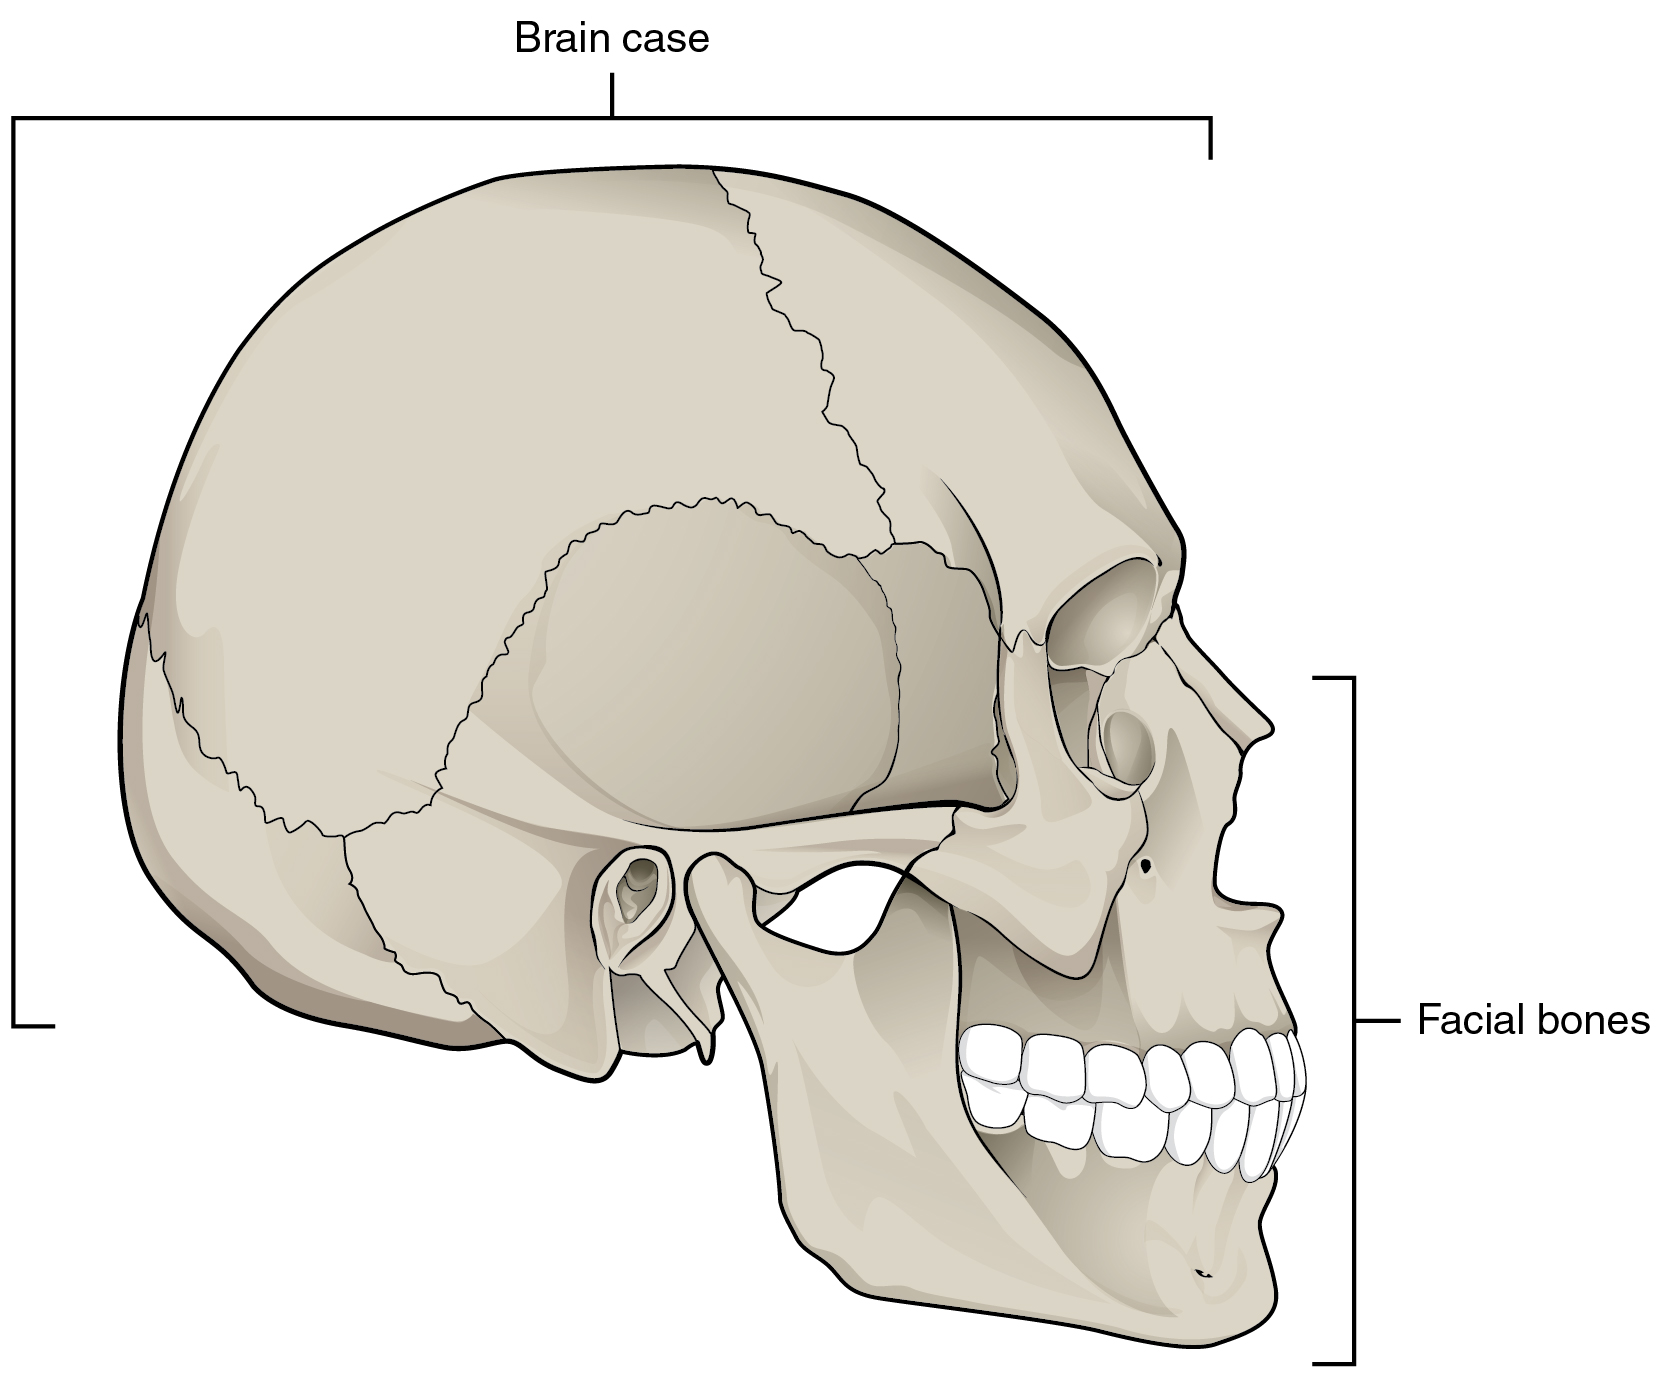 facial bones diagram not labeled audi a4 parts free coloring pages of human skull labeling